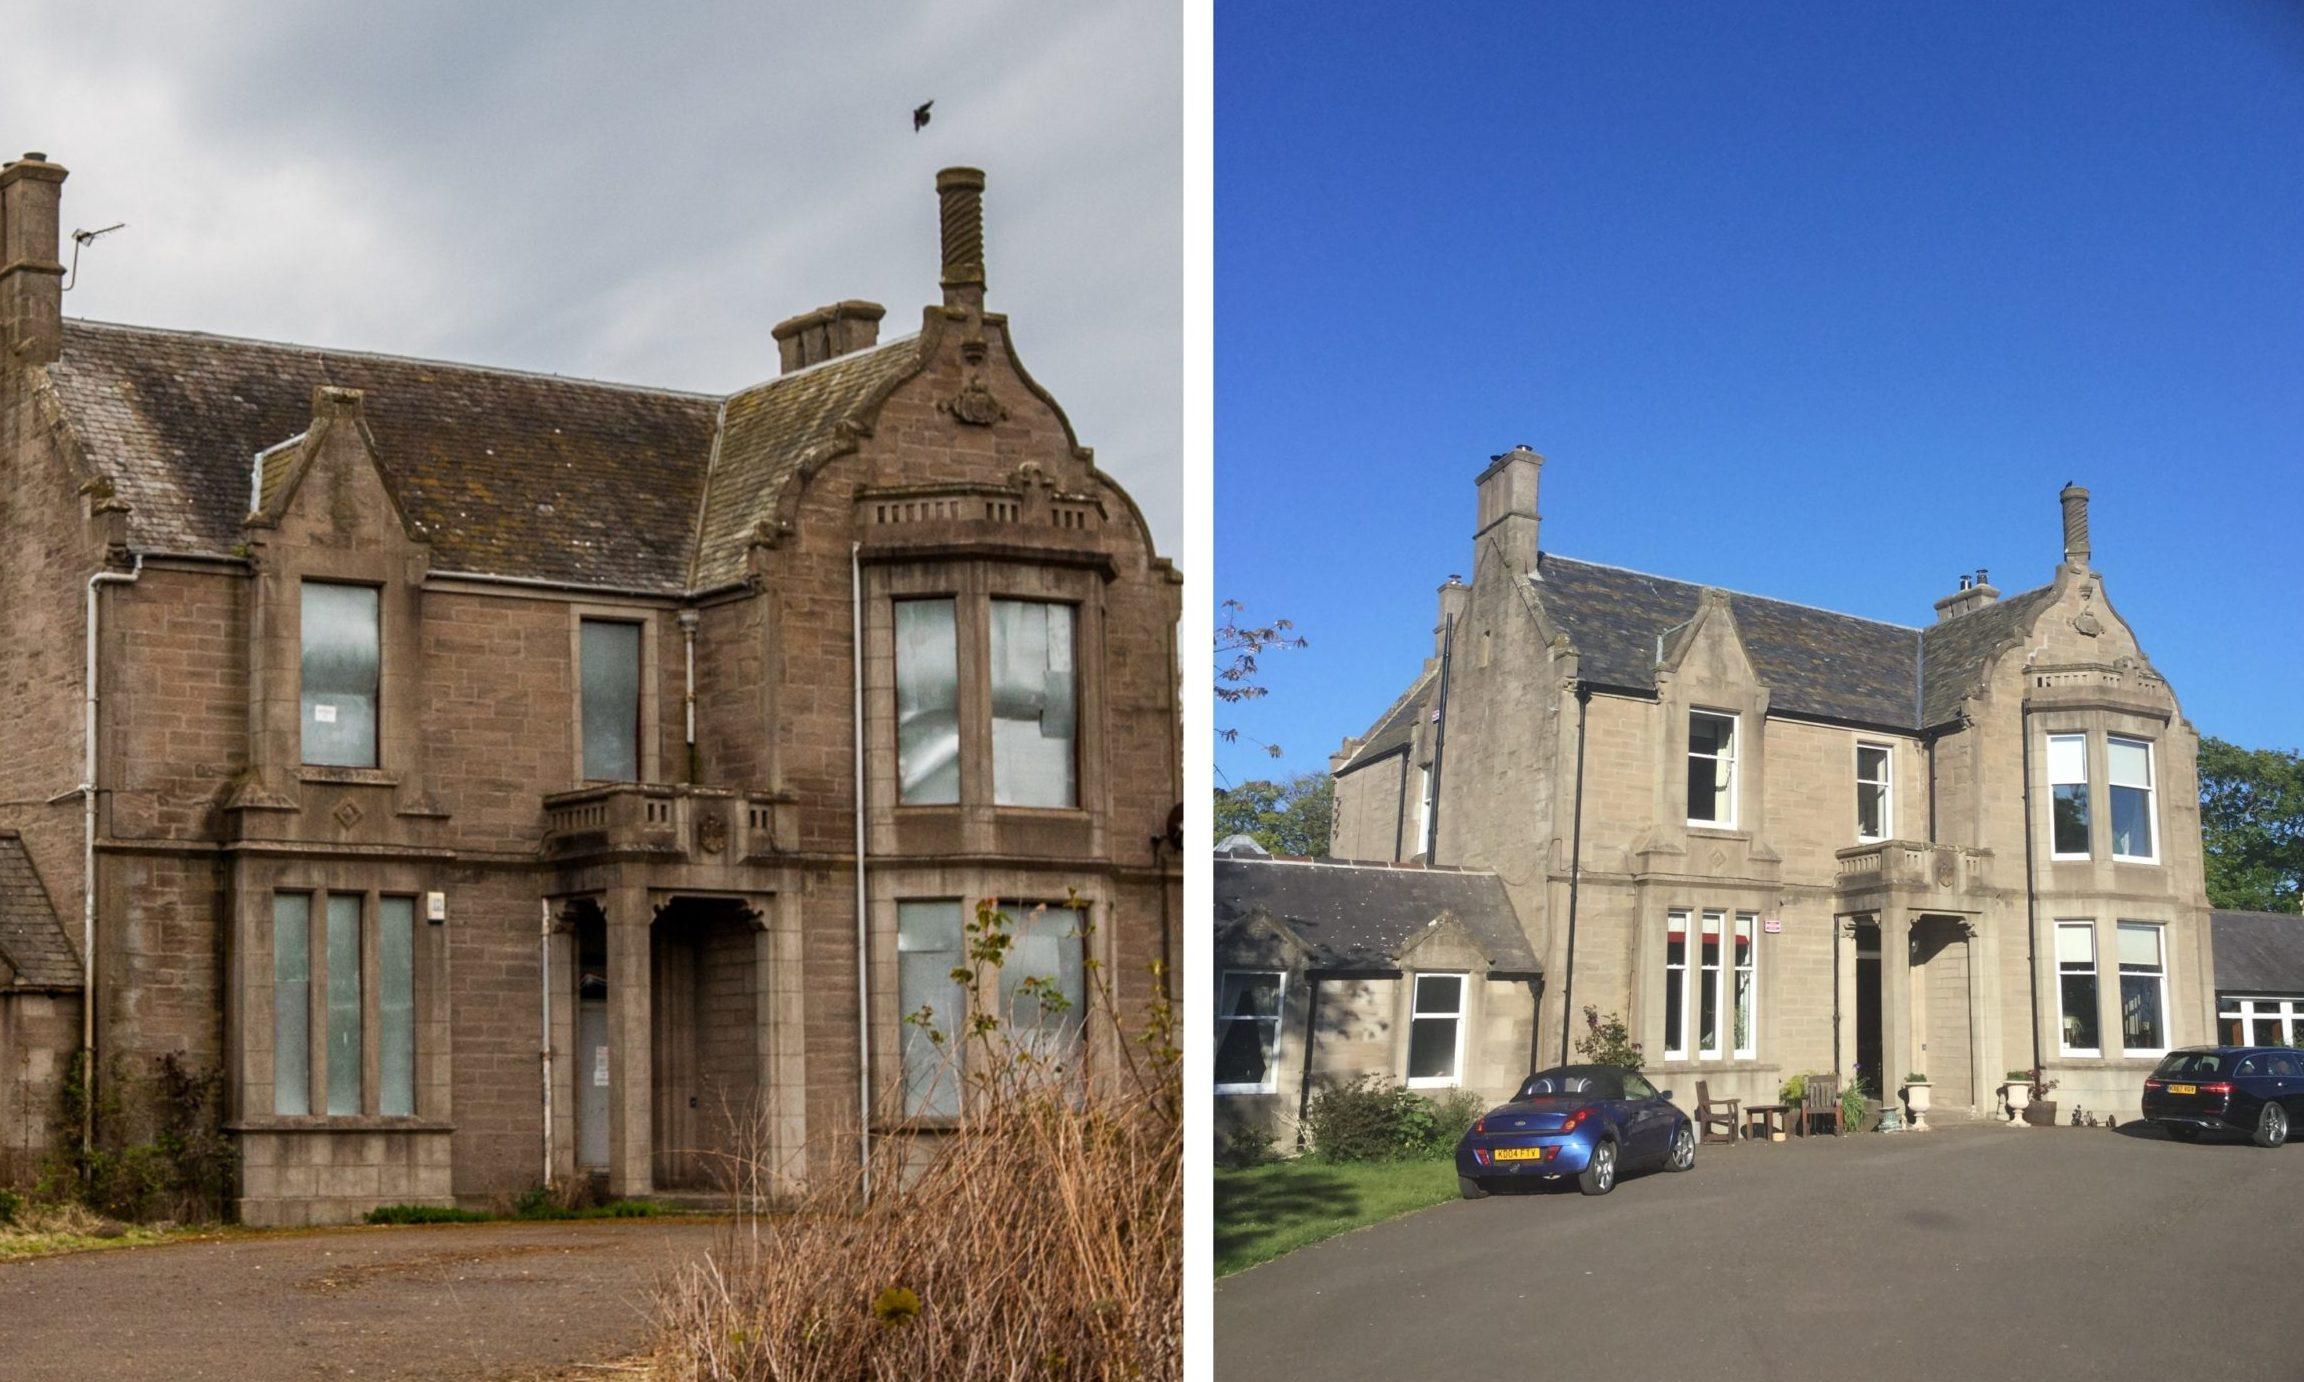 Panbride House in 2017 (left) and 2020 (right).